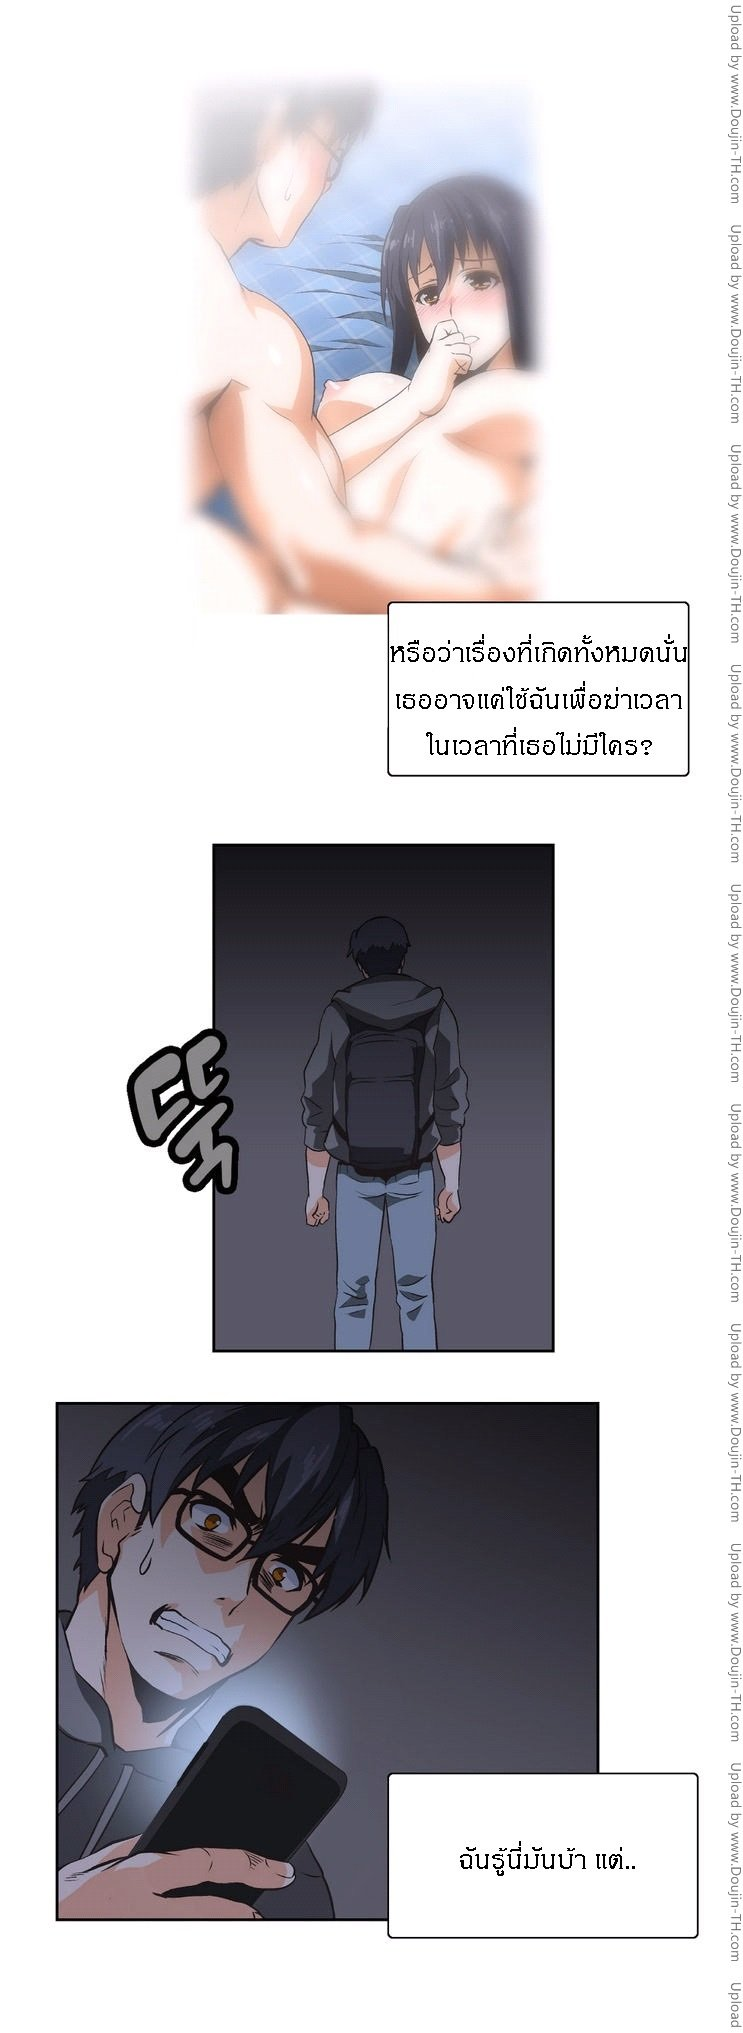 SStudy 10 - What am I ? - หน้า 20